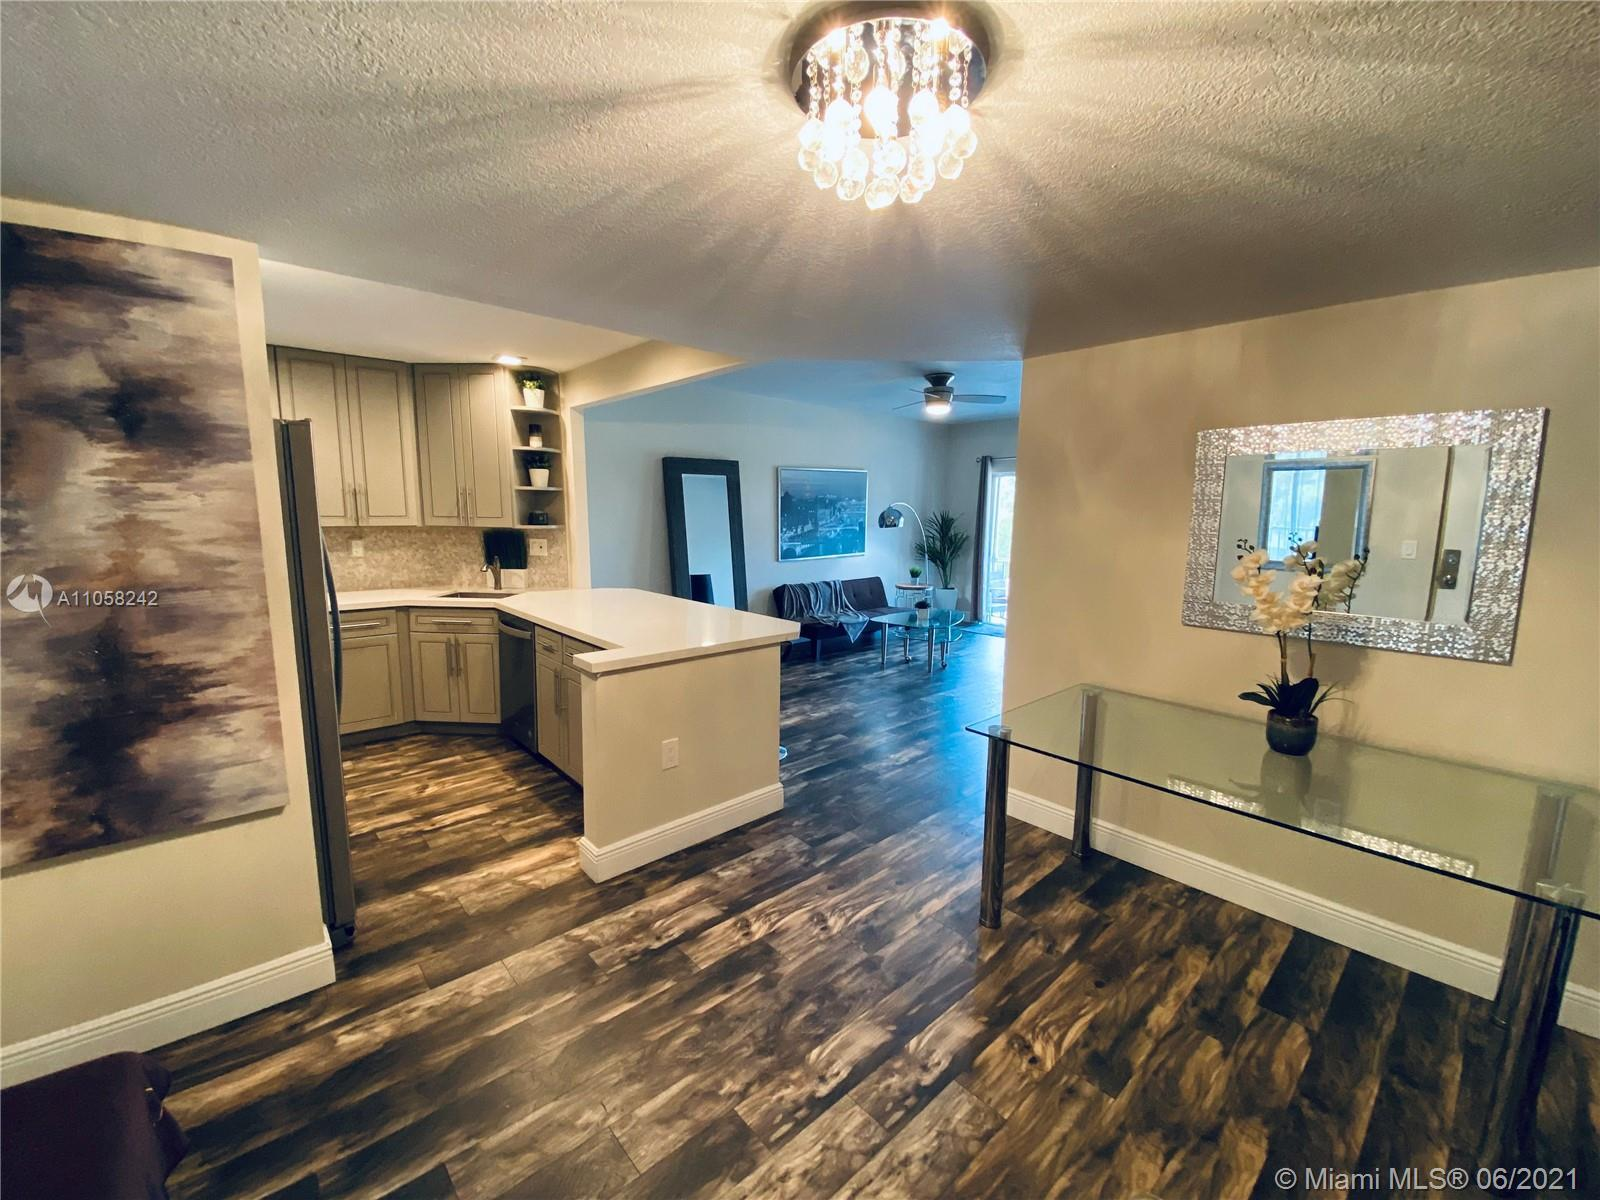 Jewel Alert! Hot location East Boca steps away from Mizner Park & downtown Boca. This fully renovate